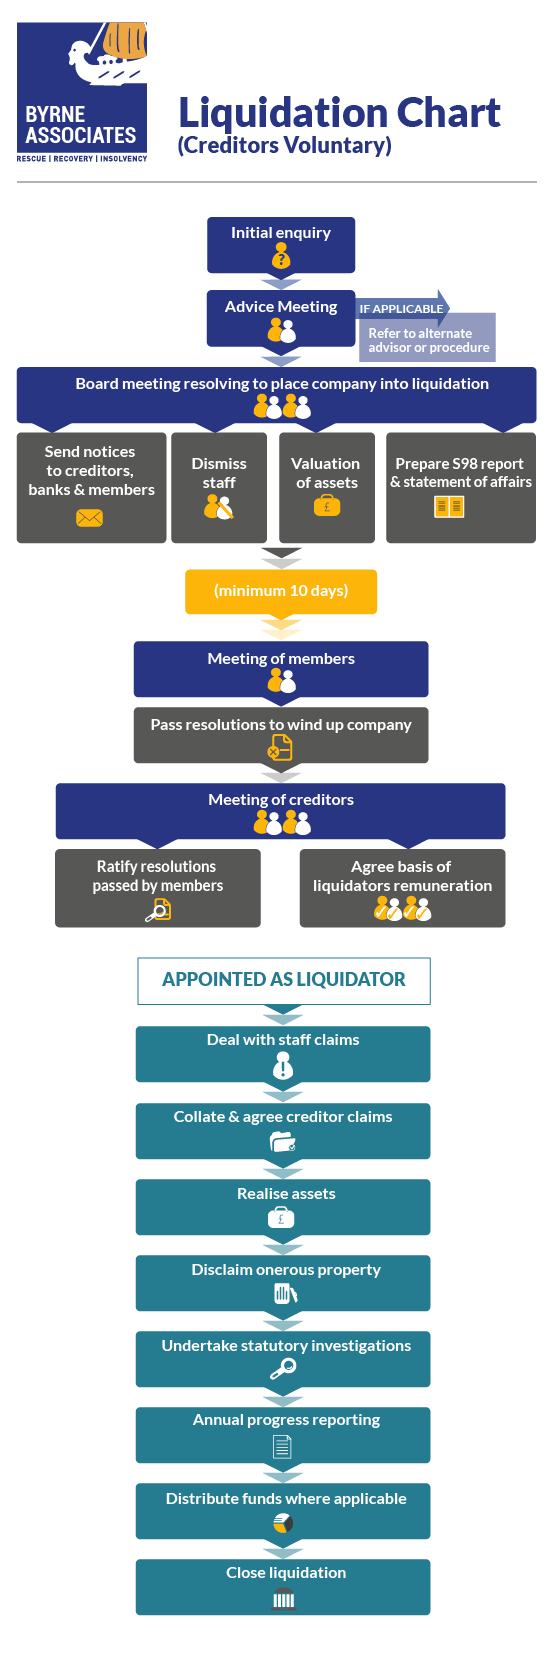 Liquidation and insolvency